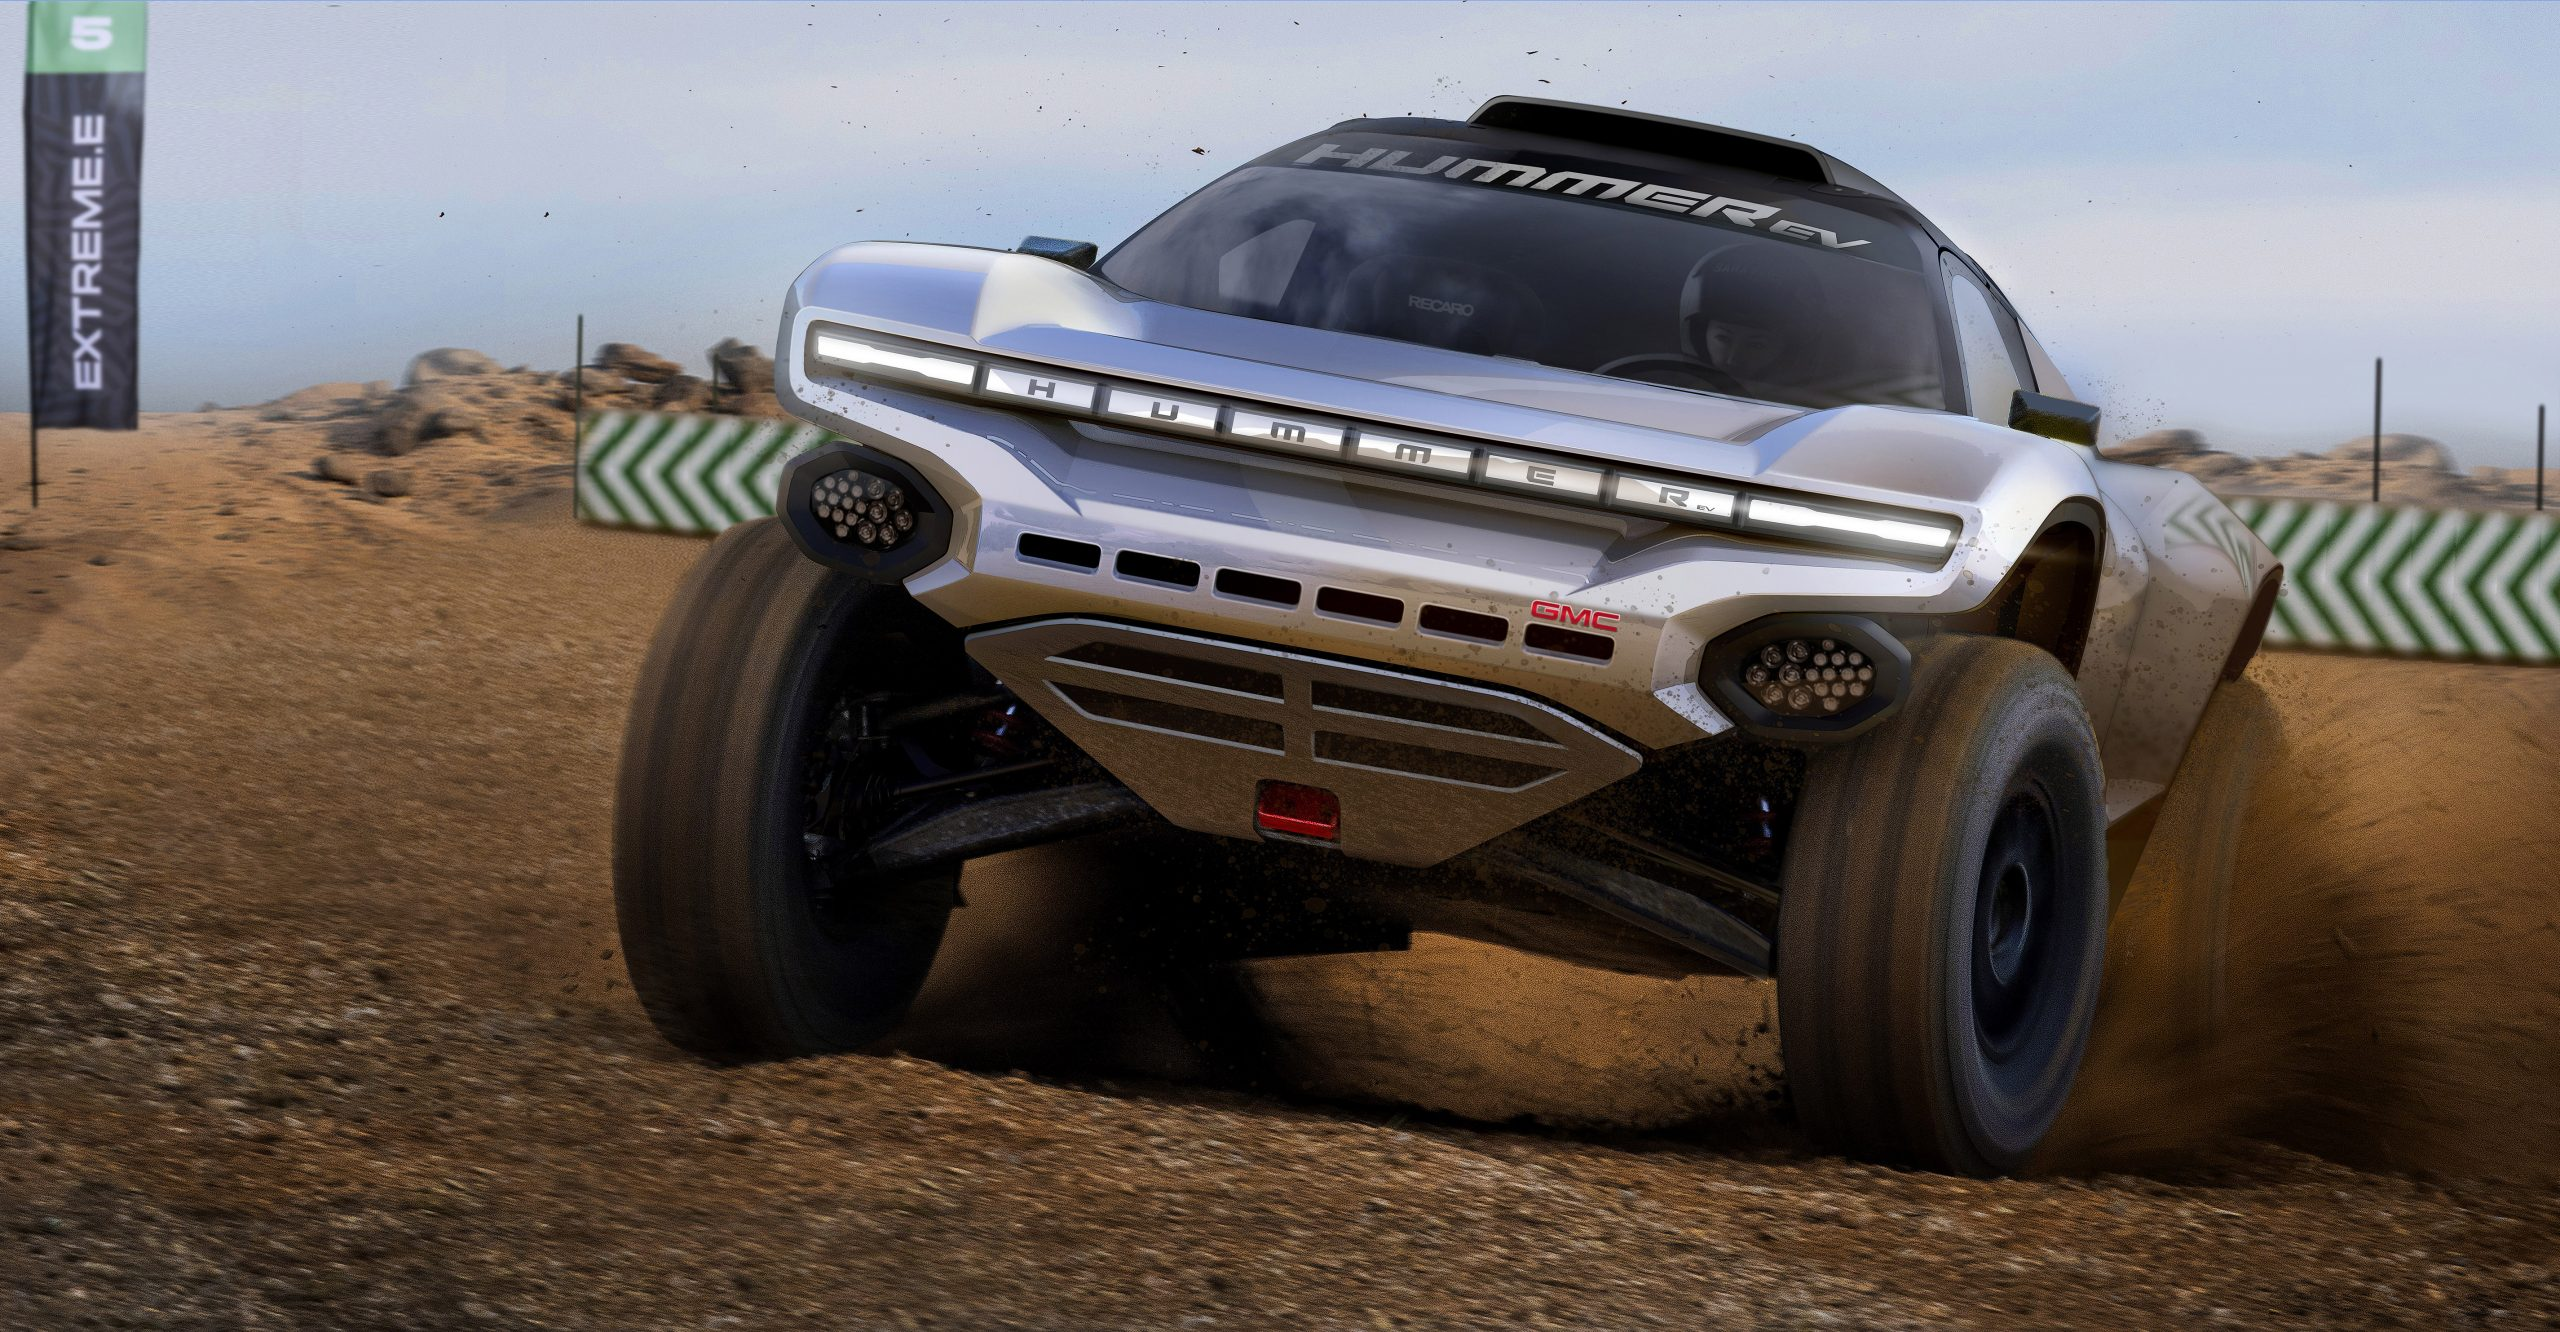 GMC is dressing up an off-road racer in Hummer EV costume